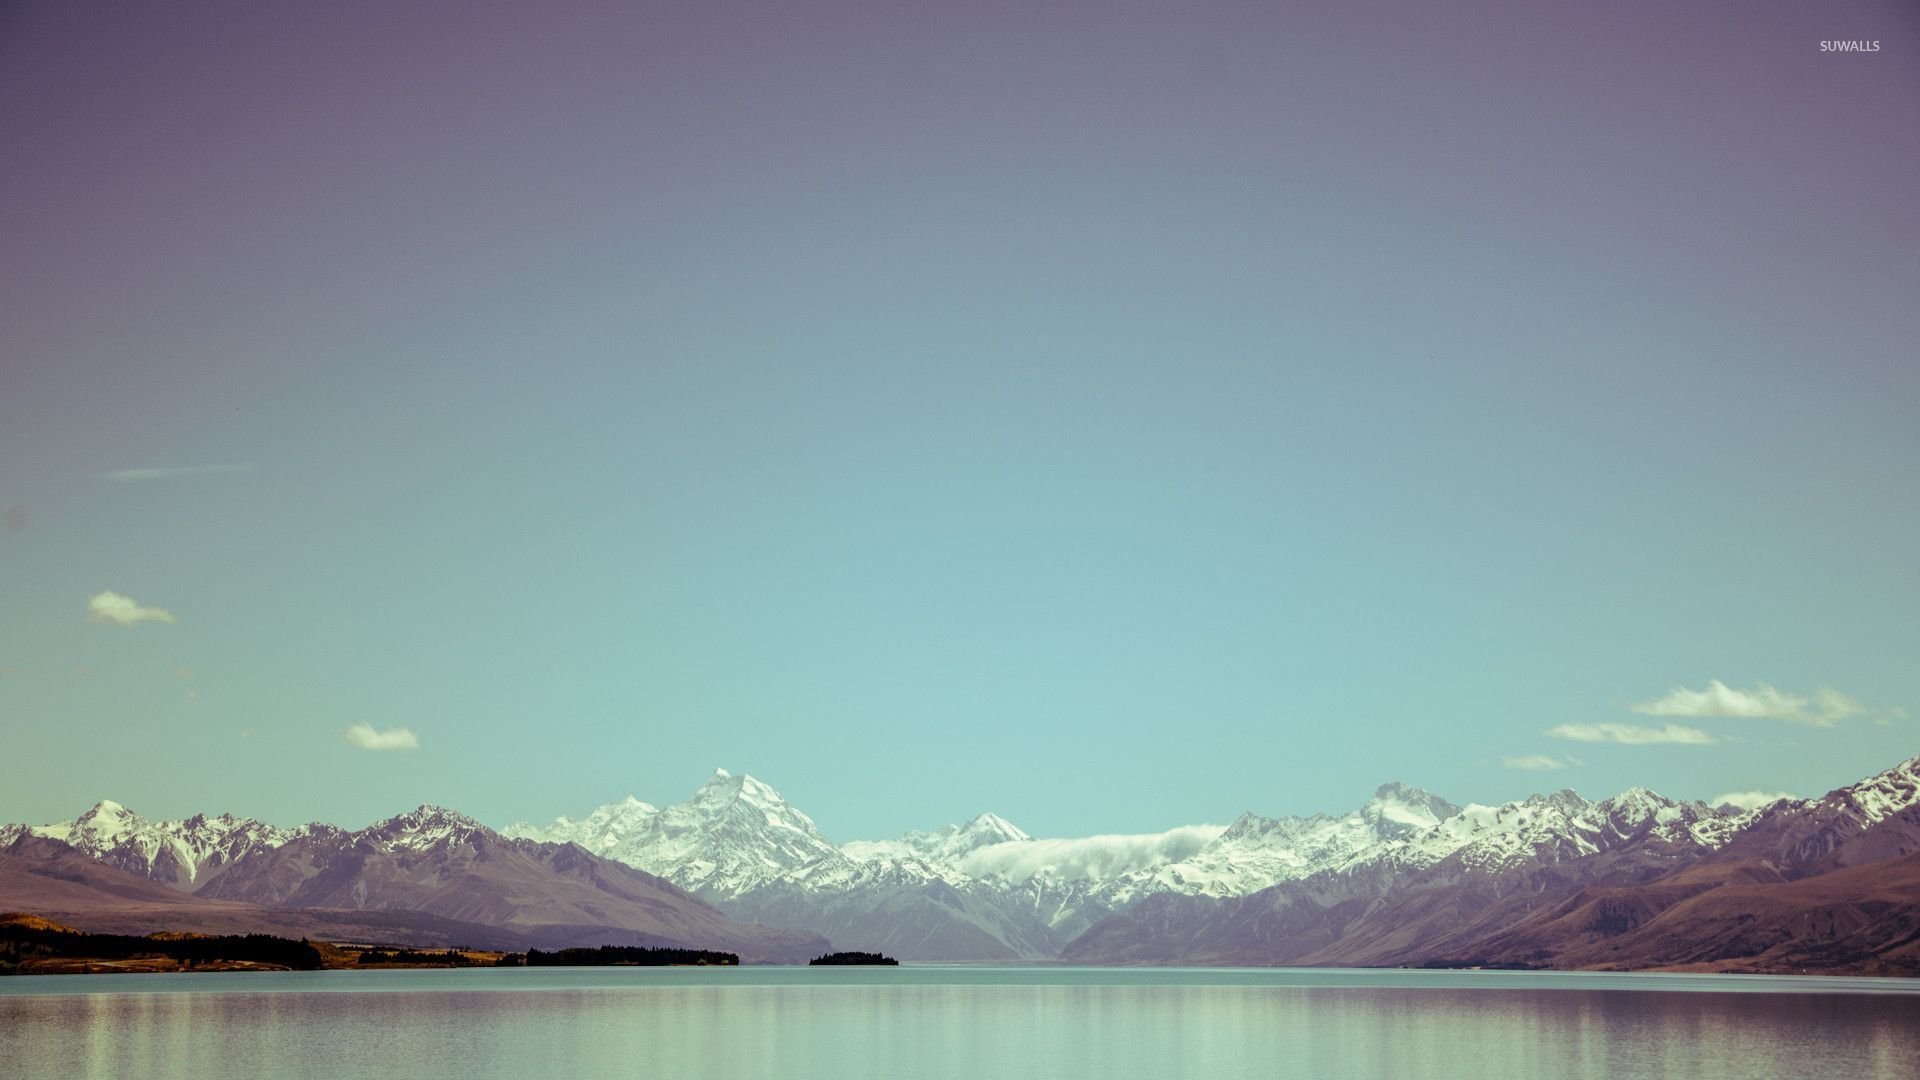 Fall Mountain Wallpaper Free Southern Alps New Zealand Wallpaper Nature Wallpapers